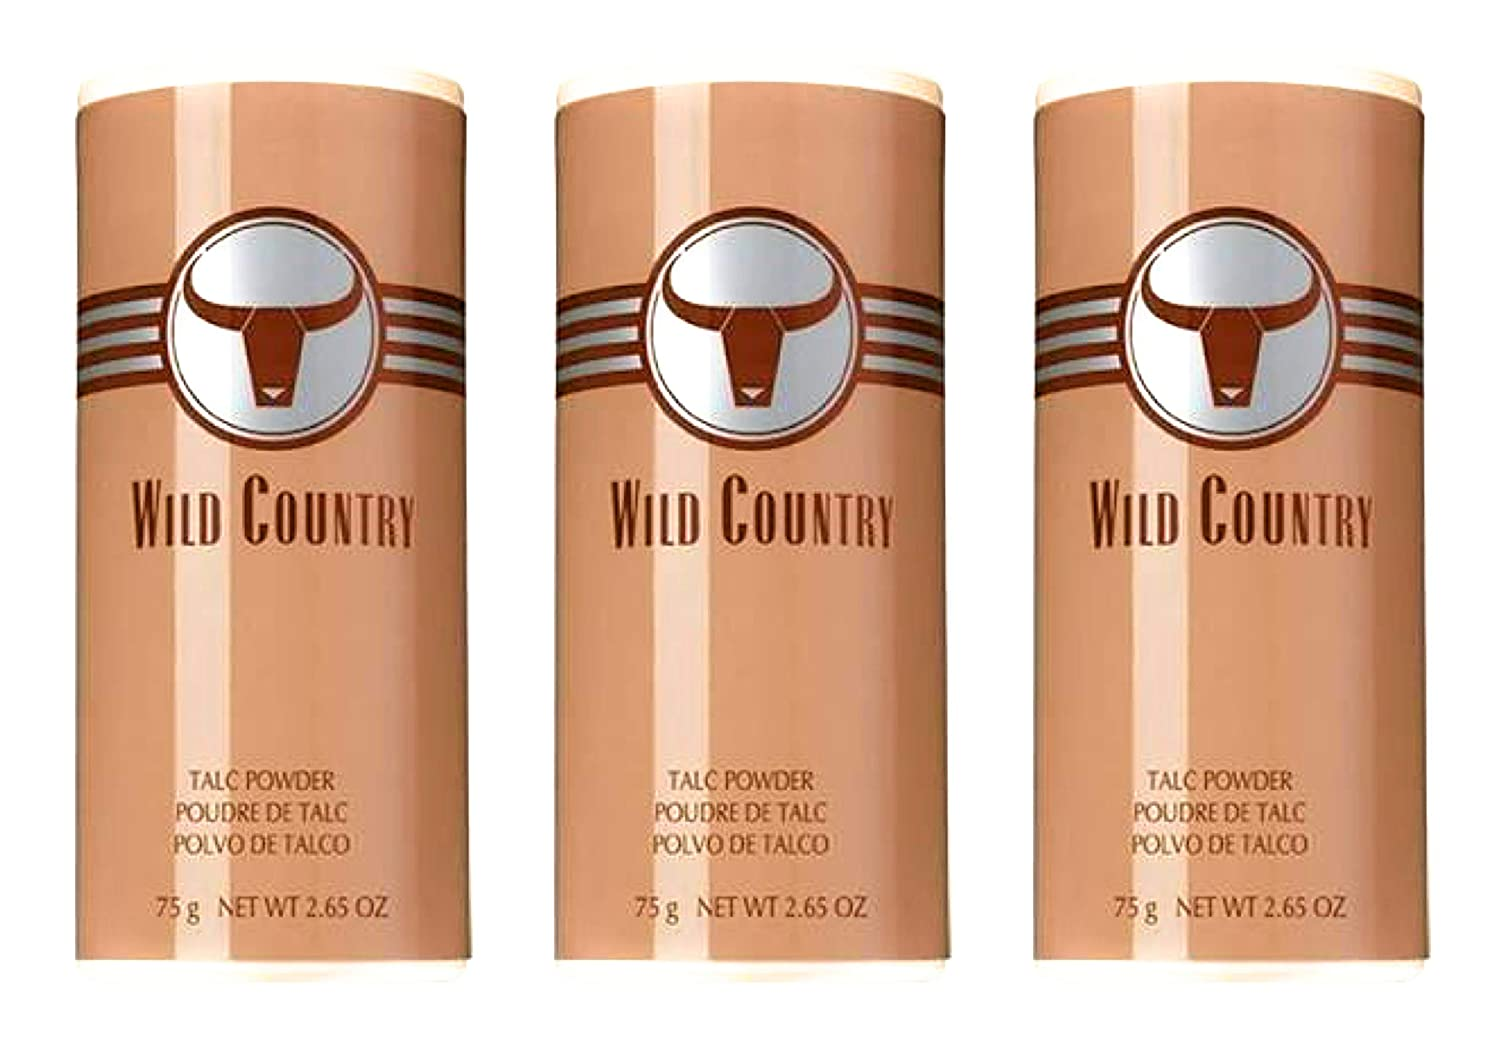 Avon WILD COUNTRY Body Powder